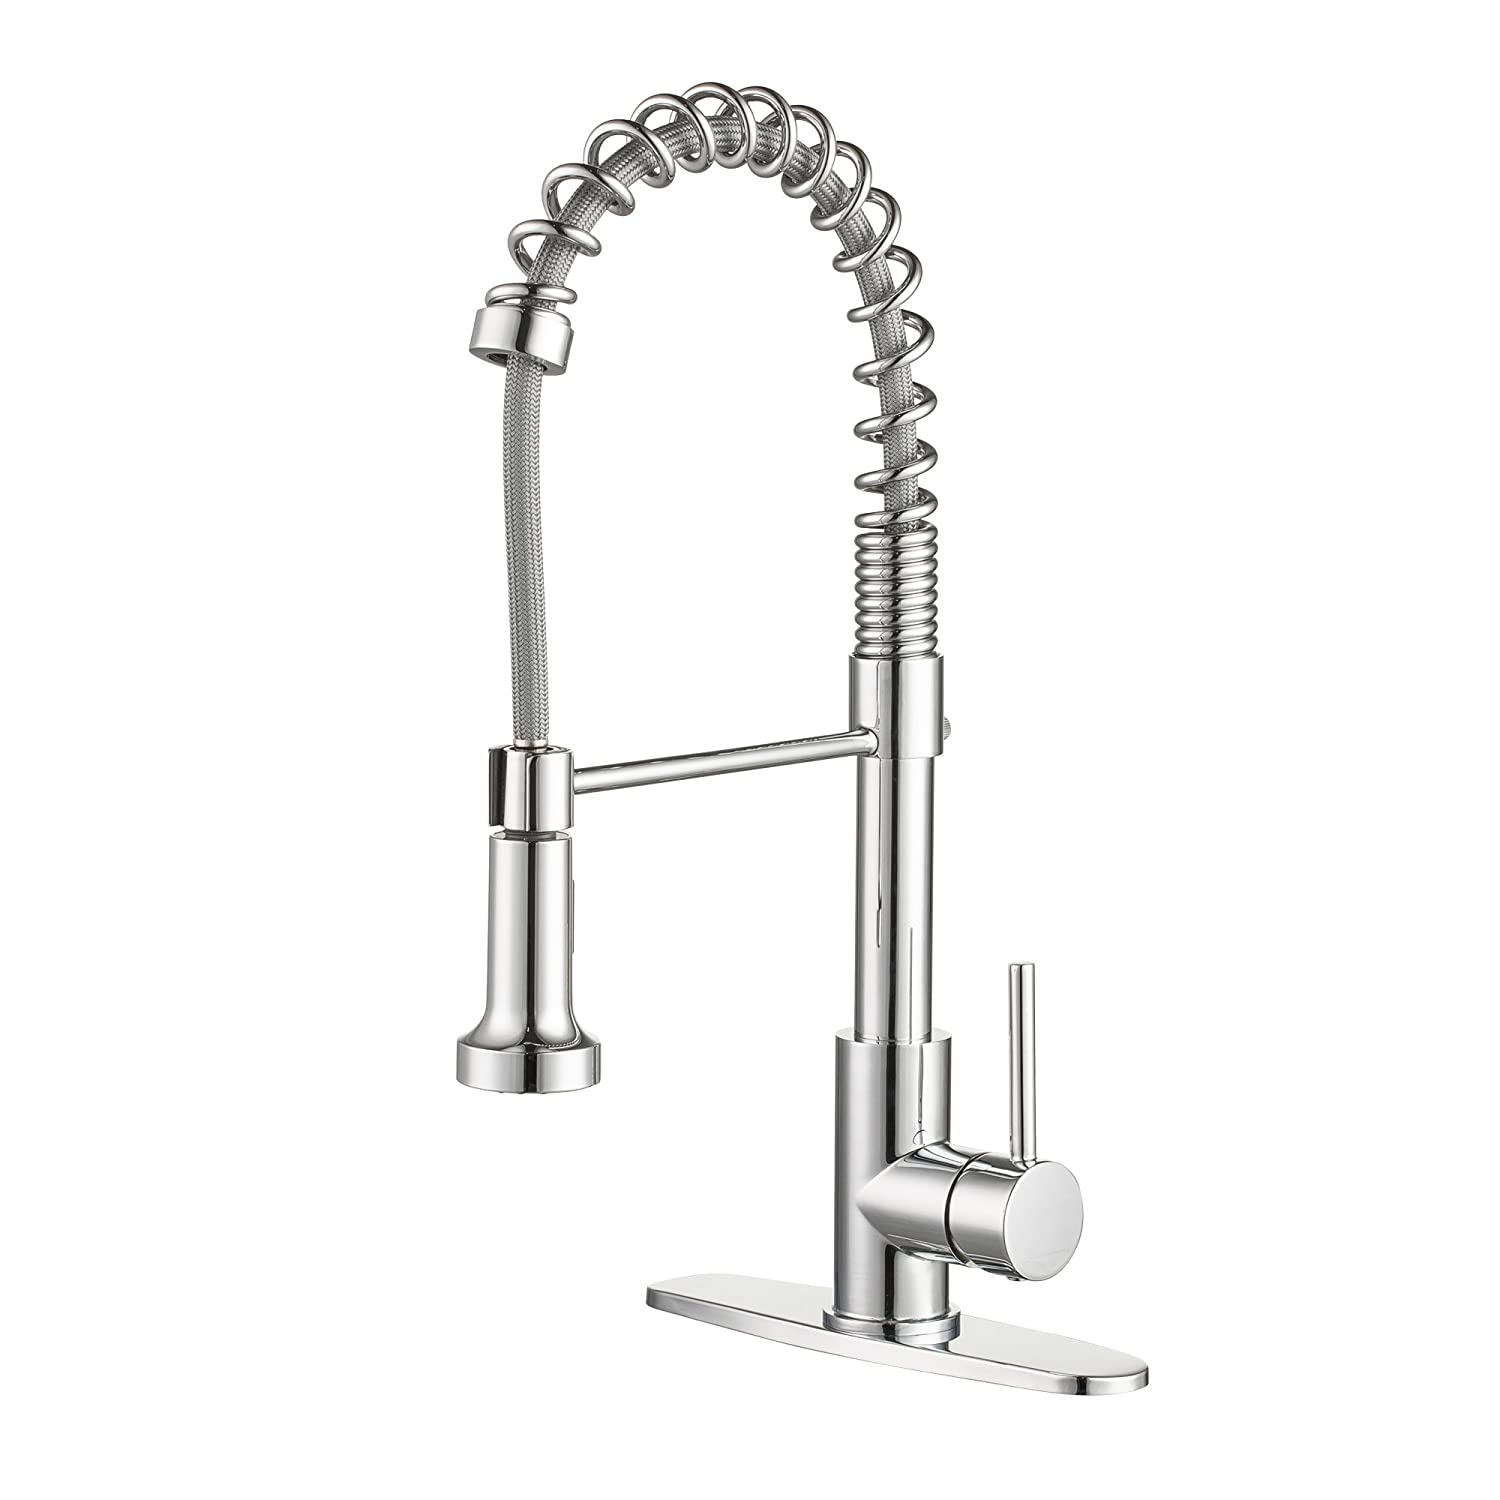 Enzo Rodi Modern Commercial Spring High-arc Lead-free Brass Pull-down Kitchen Sink Faucet with Pull-out Sprayer, Chrome, ERF7358392CP-10